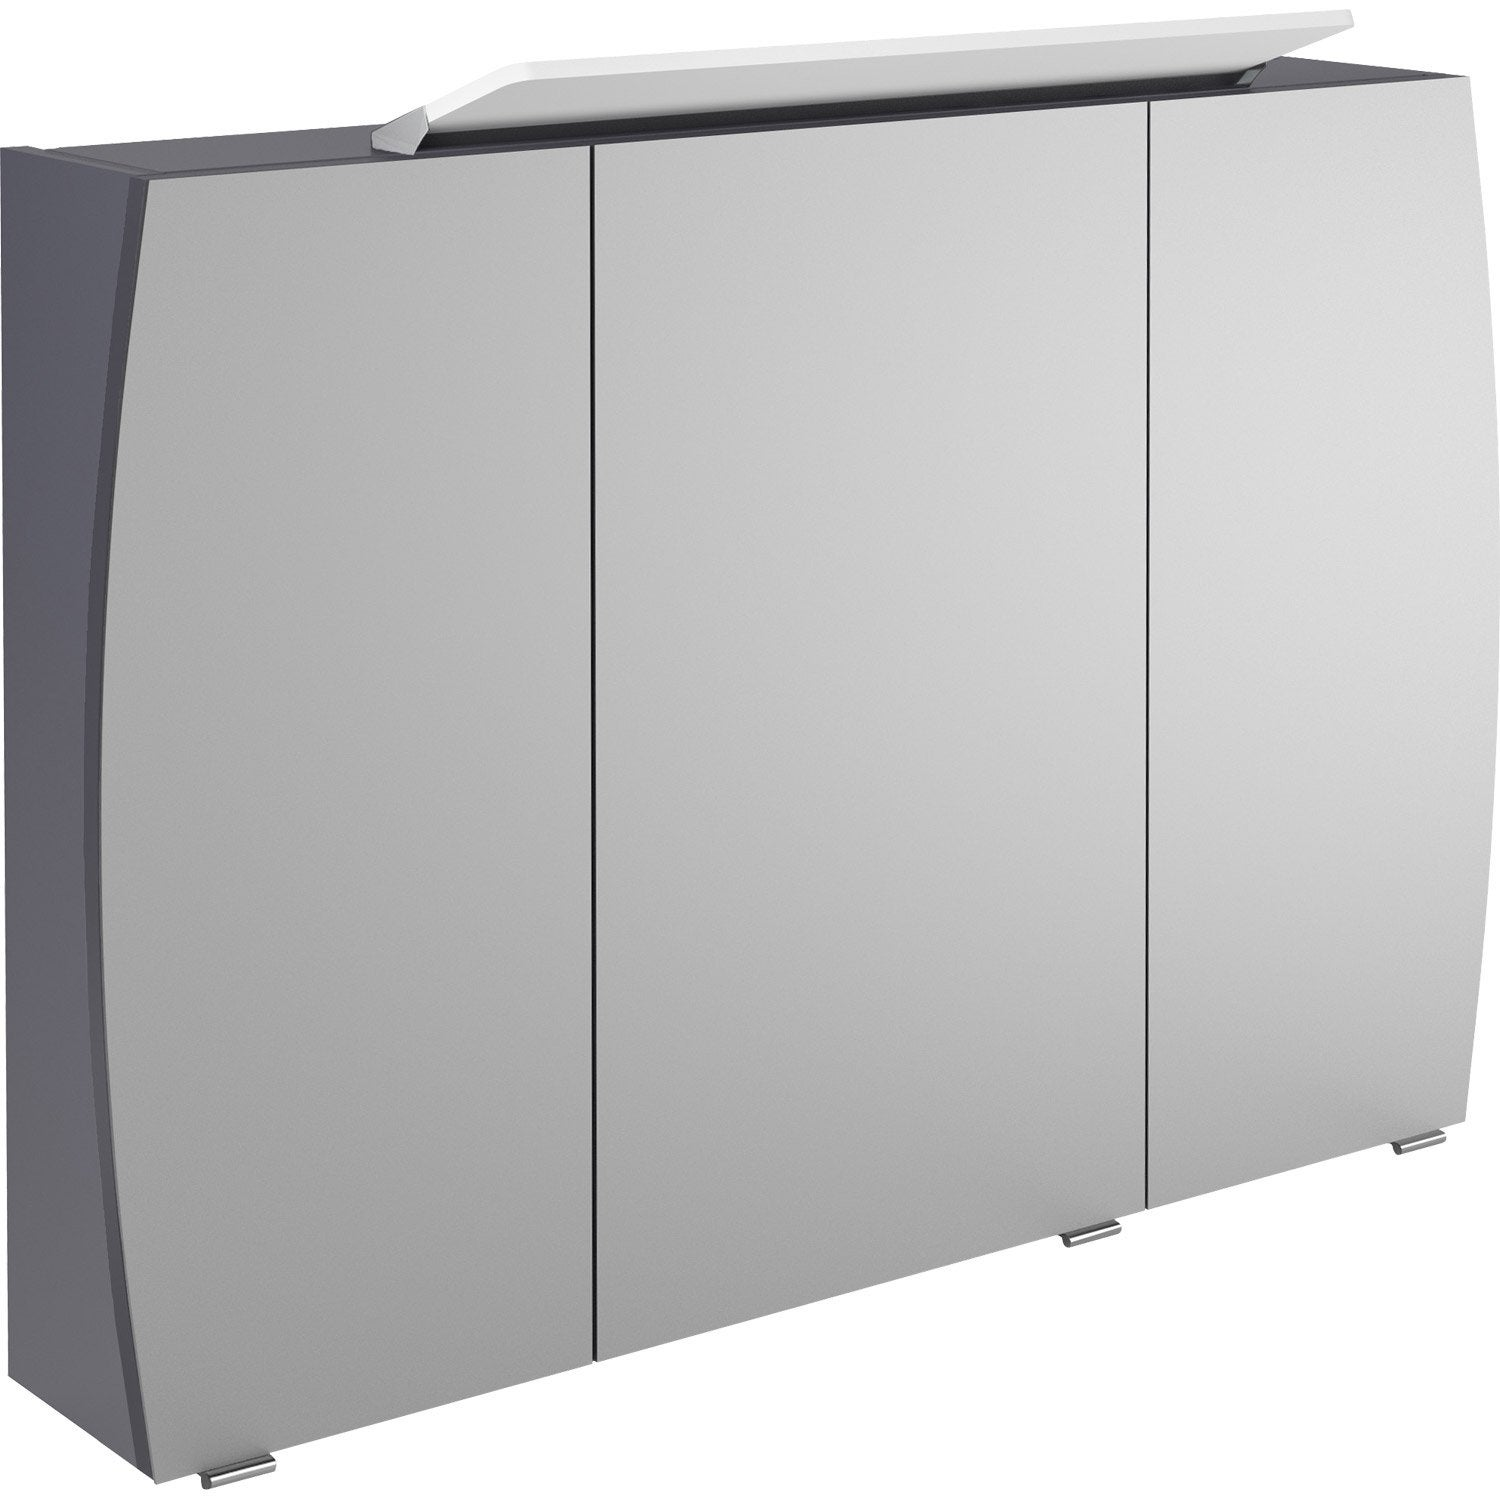 armoire de toilette lumineuse l 100 cm gris image leroy merlin. Black Bedroom Furniture Sets. Home Design Ideas